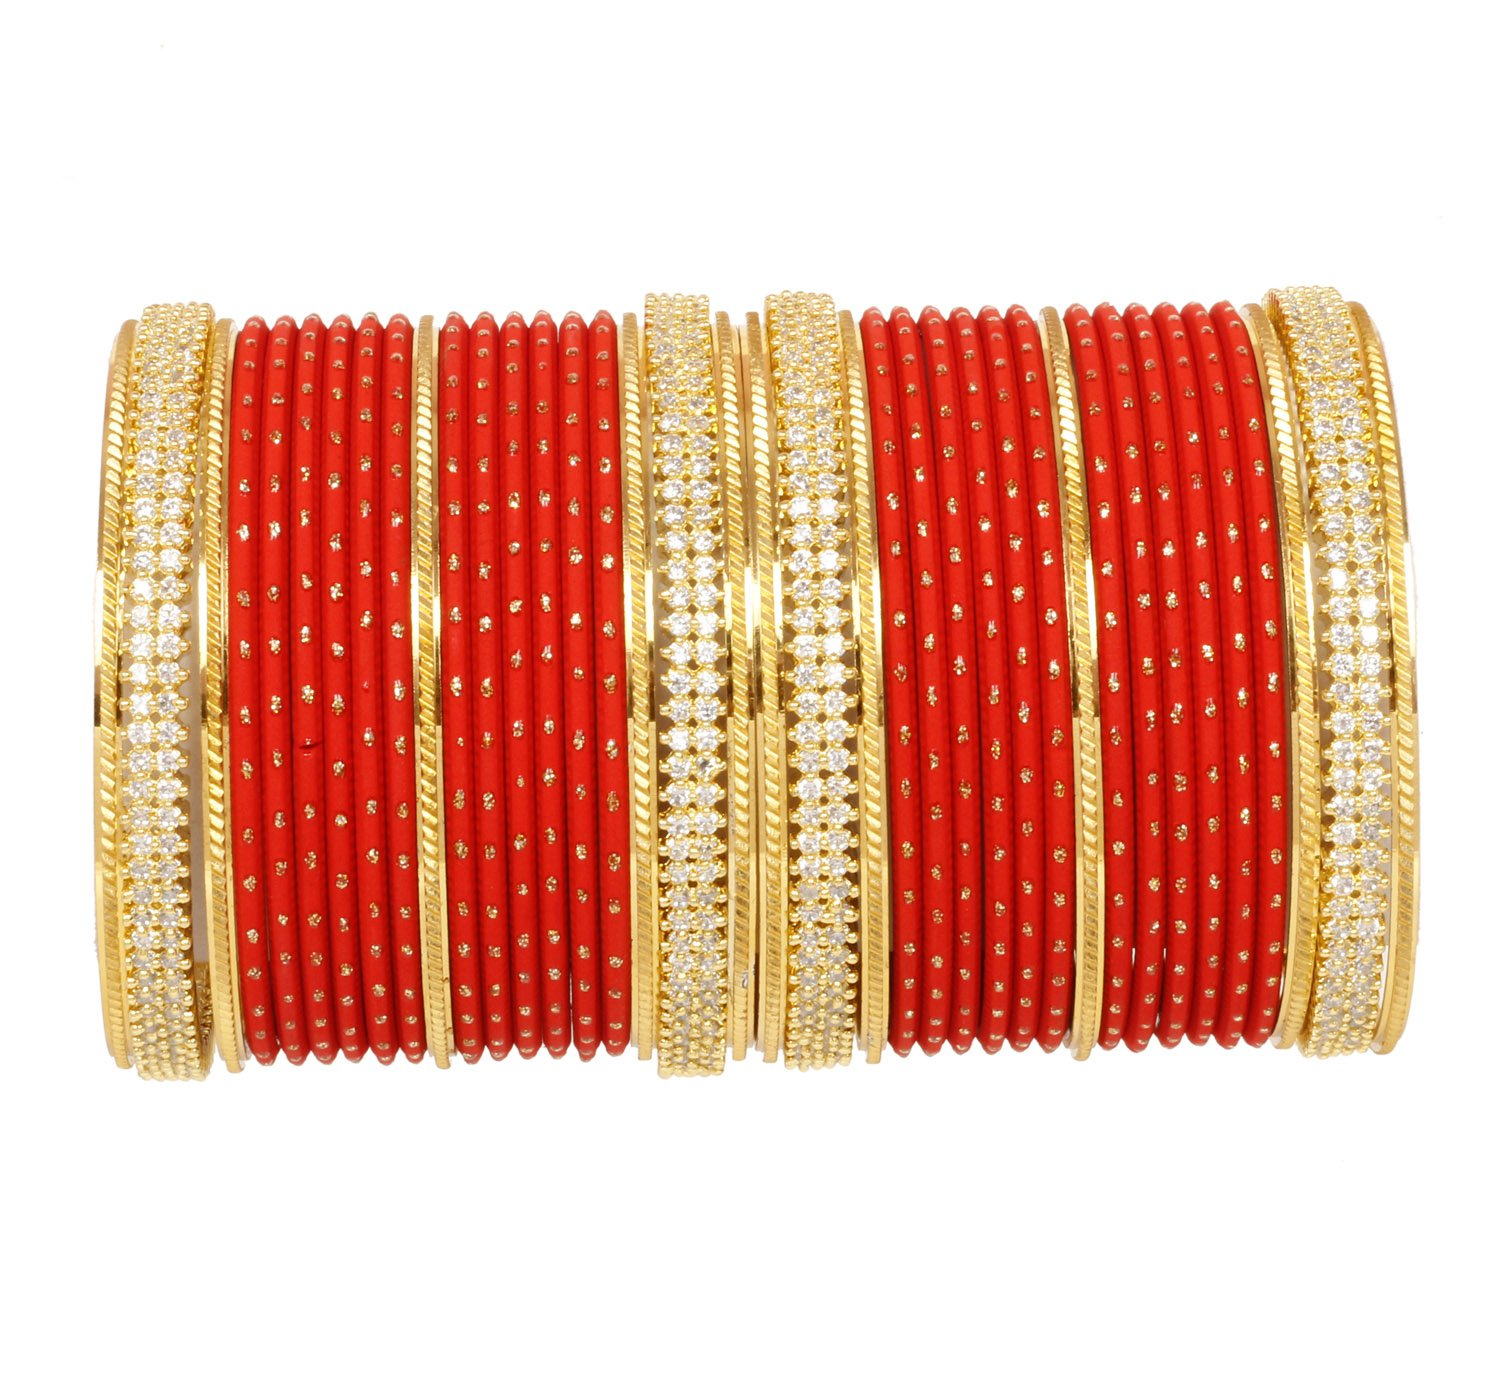 CHAUHAN COLLECTION 38 pcs AD American Golden Royal Style Red color Plain bangle set women Bridal Wedding jewelry (2.8)